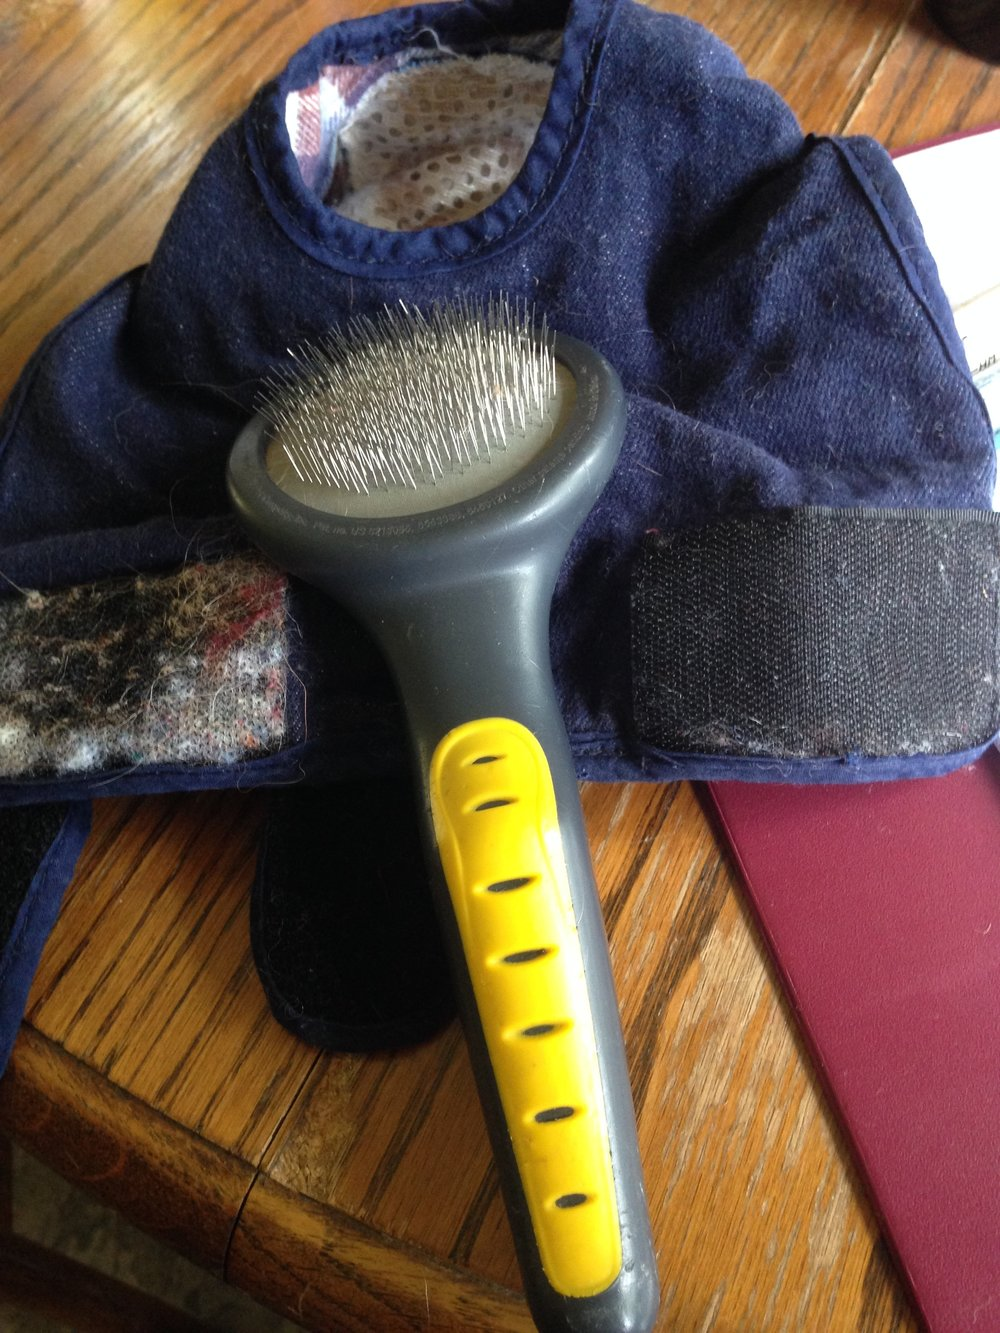 To clean velcro, try a slicker brush used on dogs and cats.